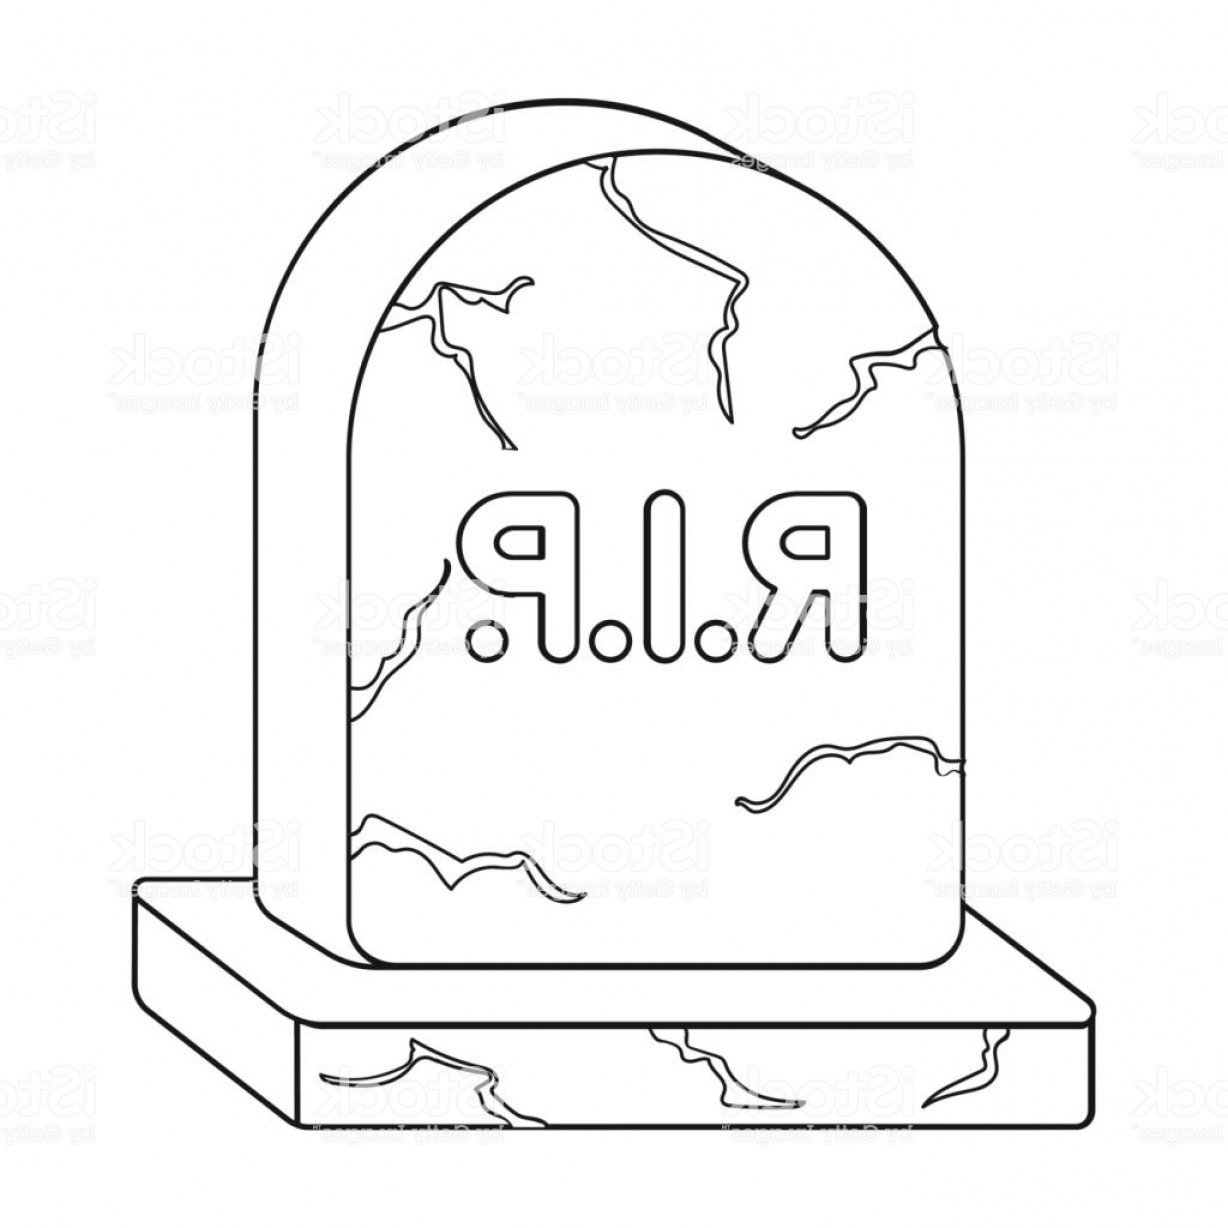 Gravestone Outline Vector: Headstone Icon In Outline Style Isolated On White Background Black And White Magic Gm